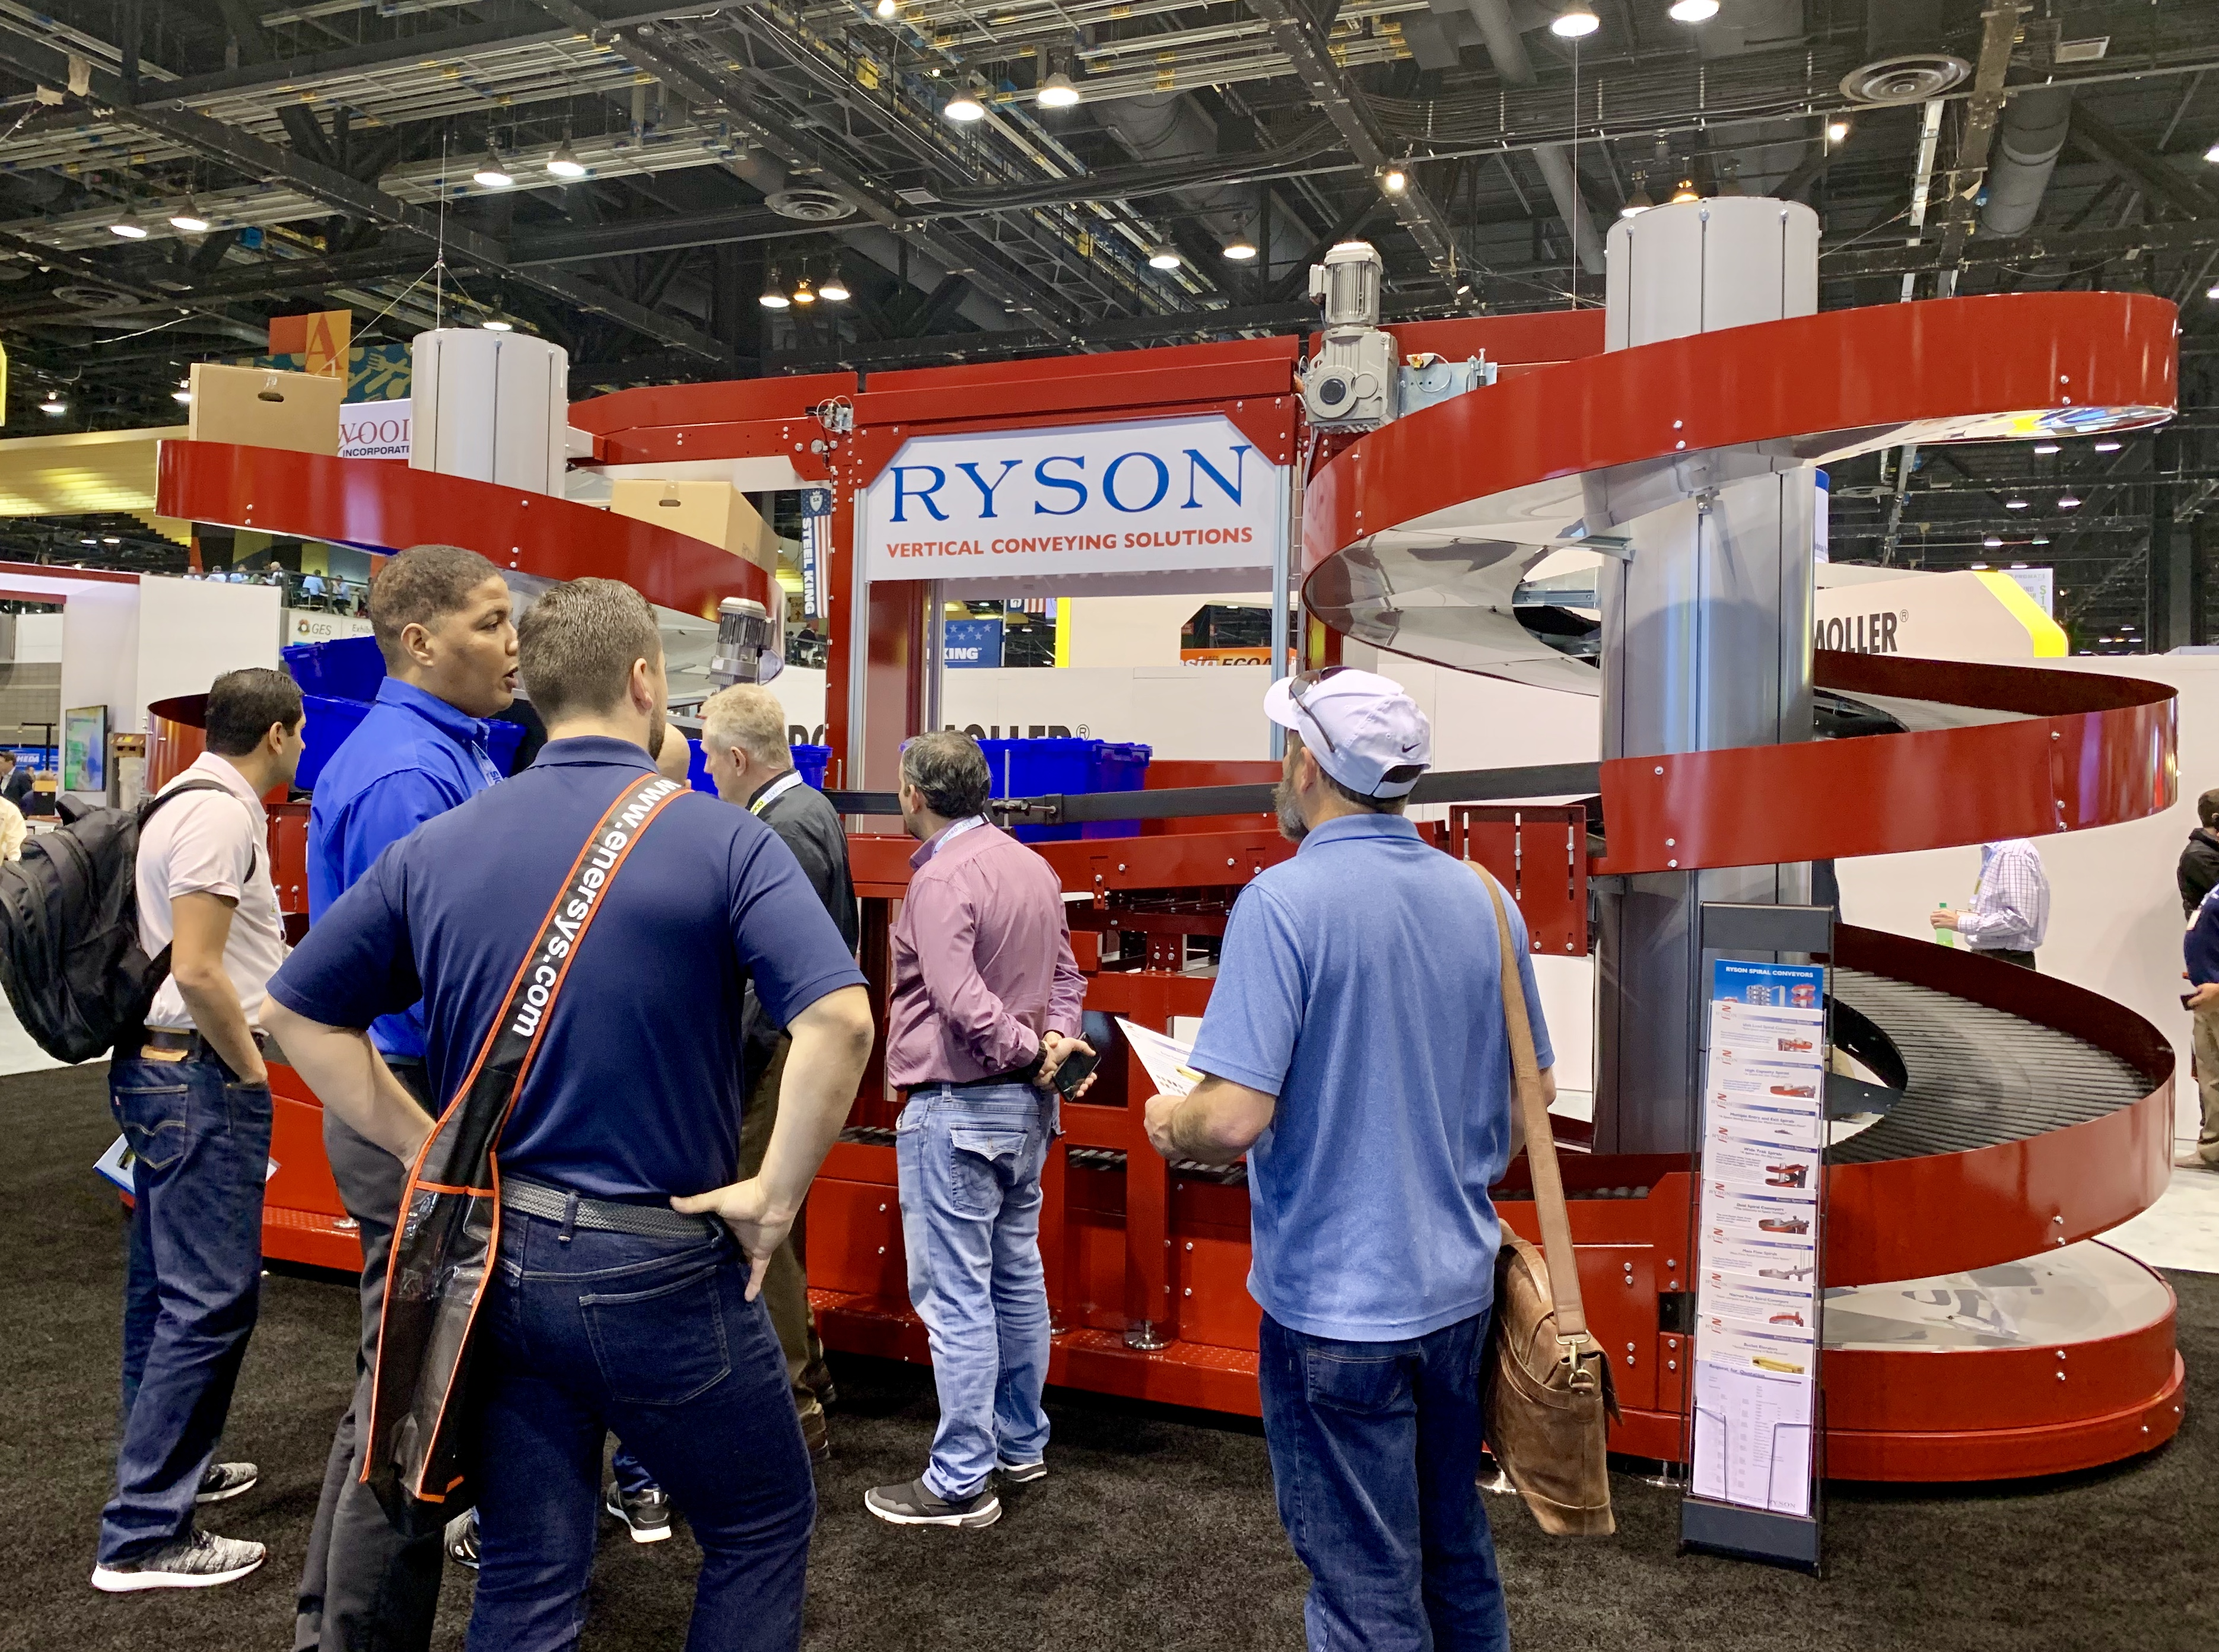 Ryson is at Promat This week